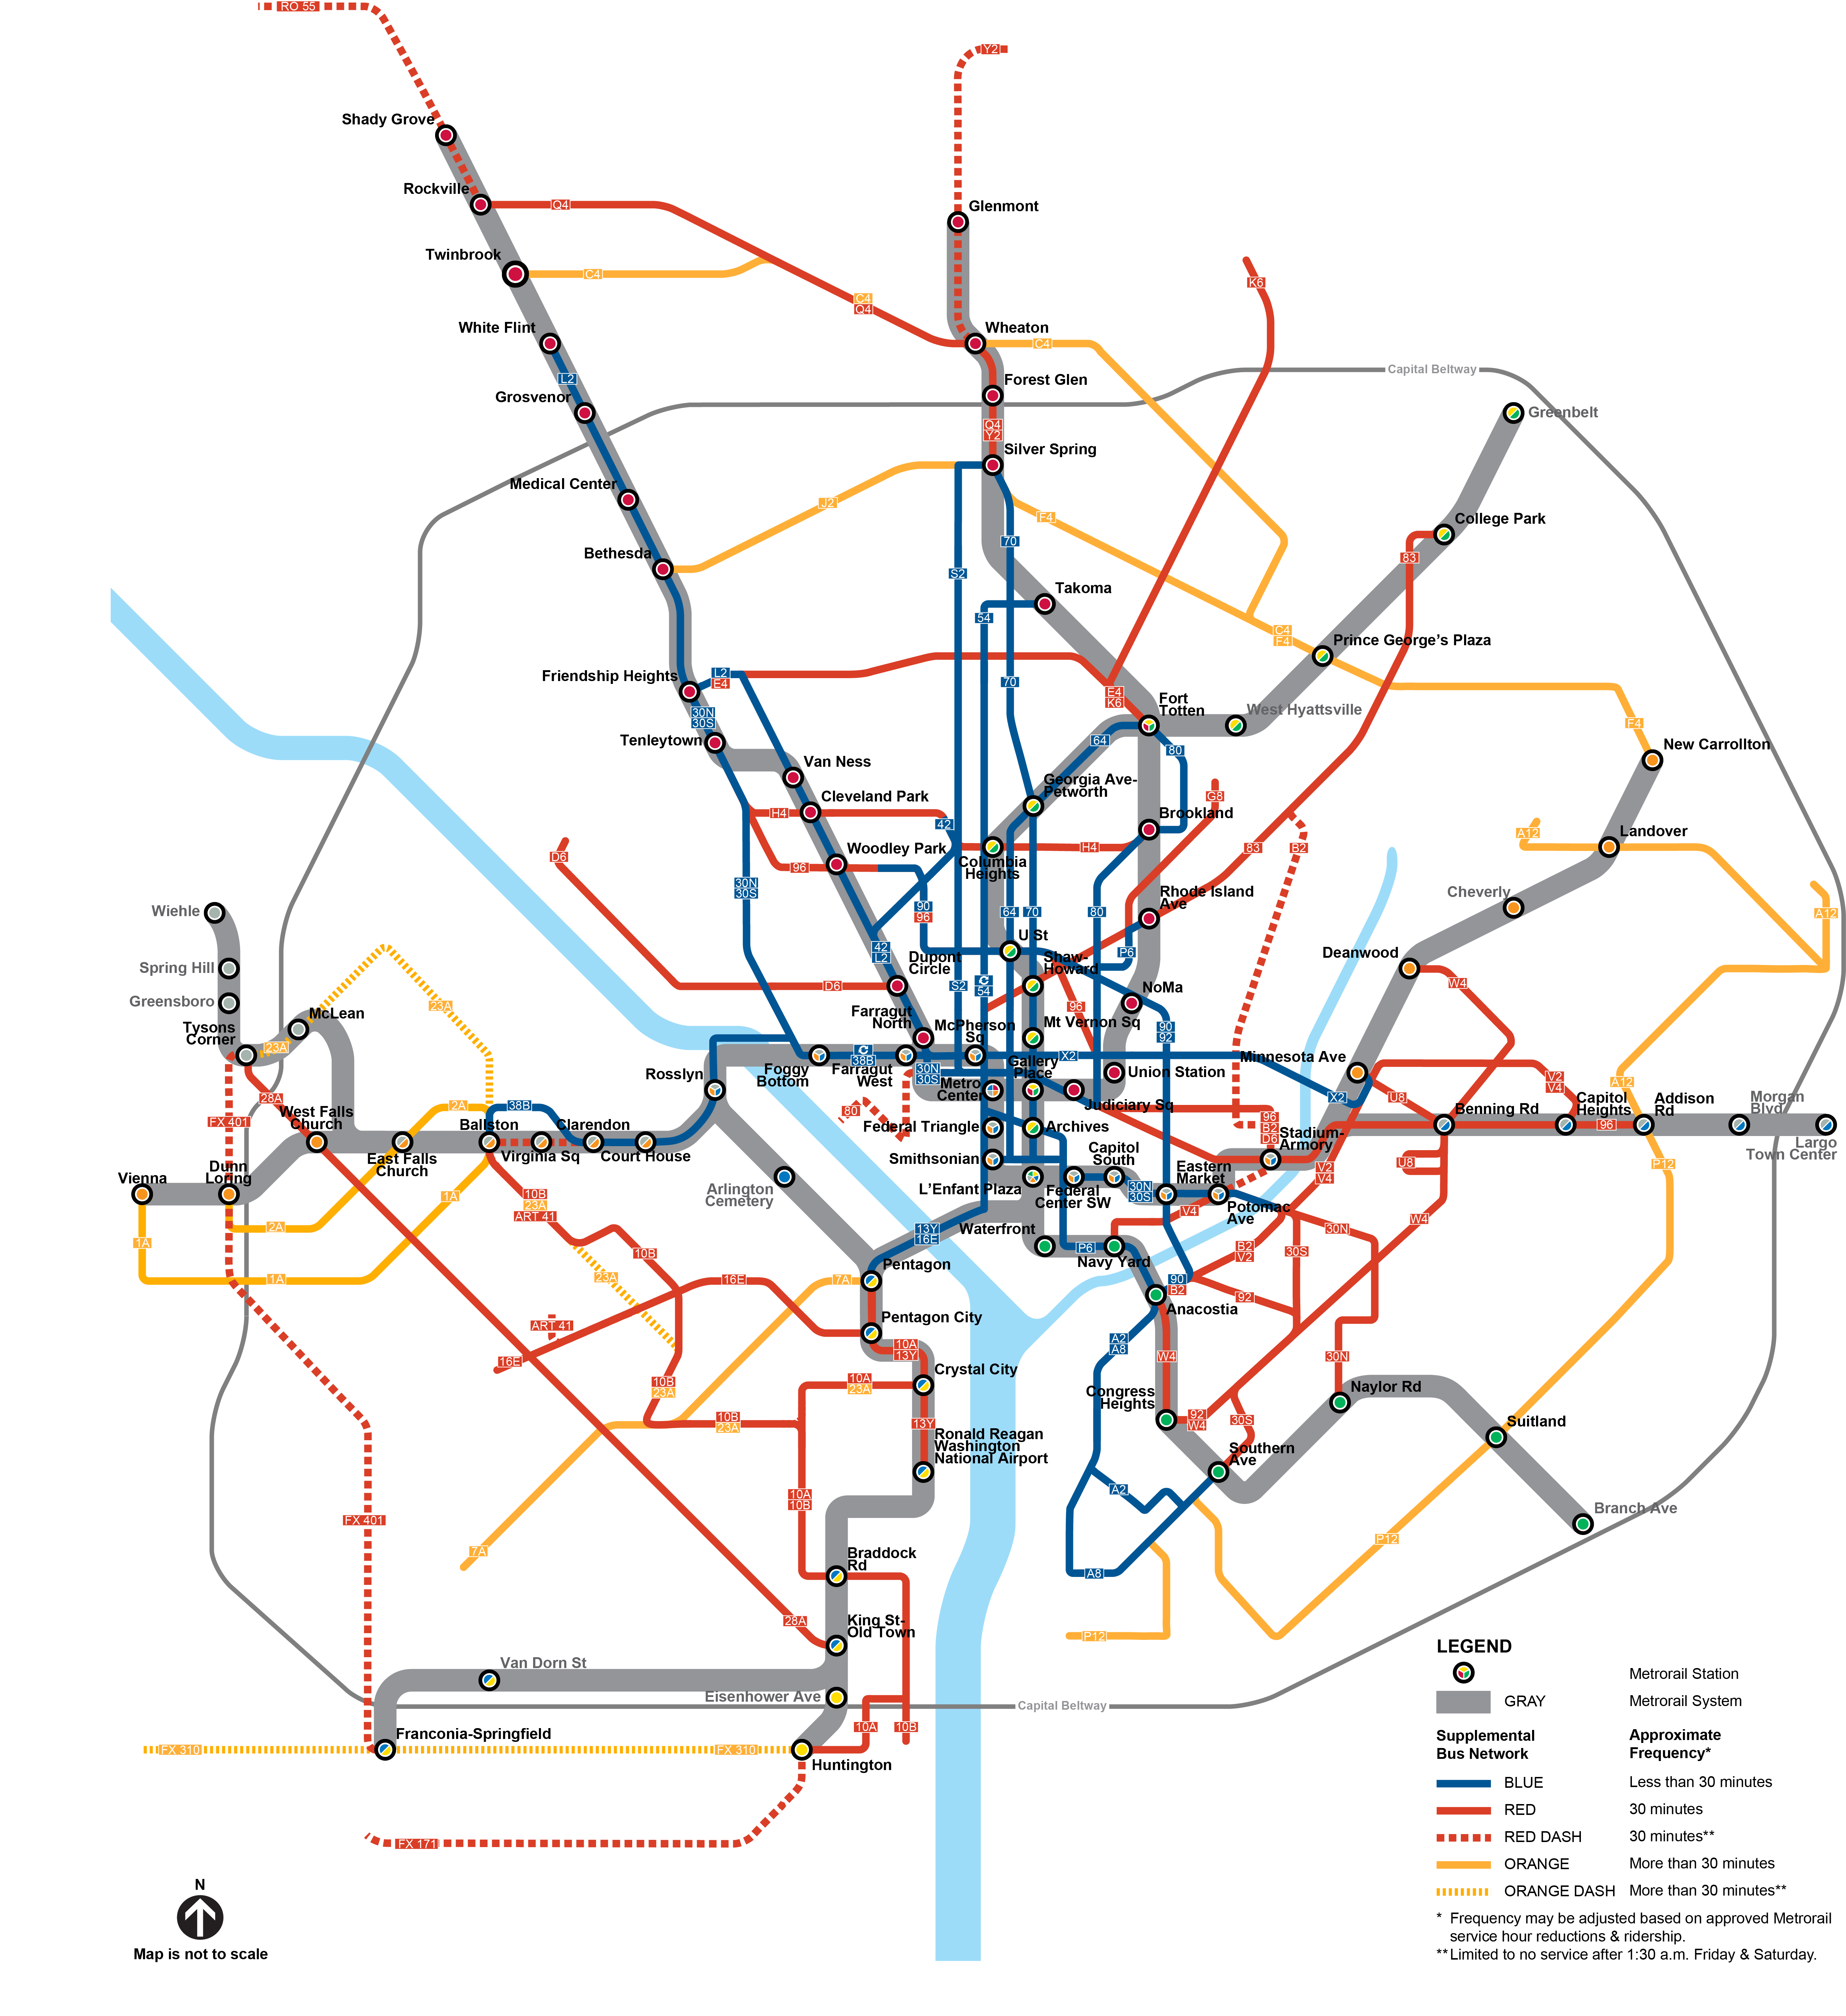 proposed service map for metrobus under proposed metrorail hours. proposed supplemental metrobus service  wmata